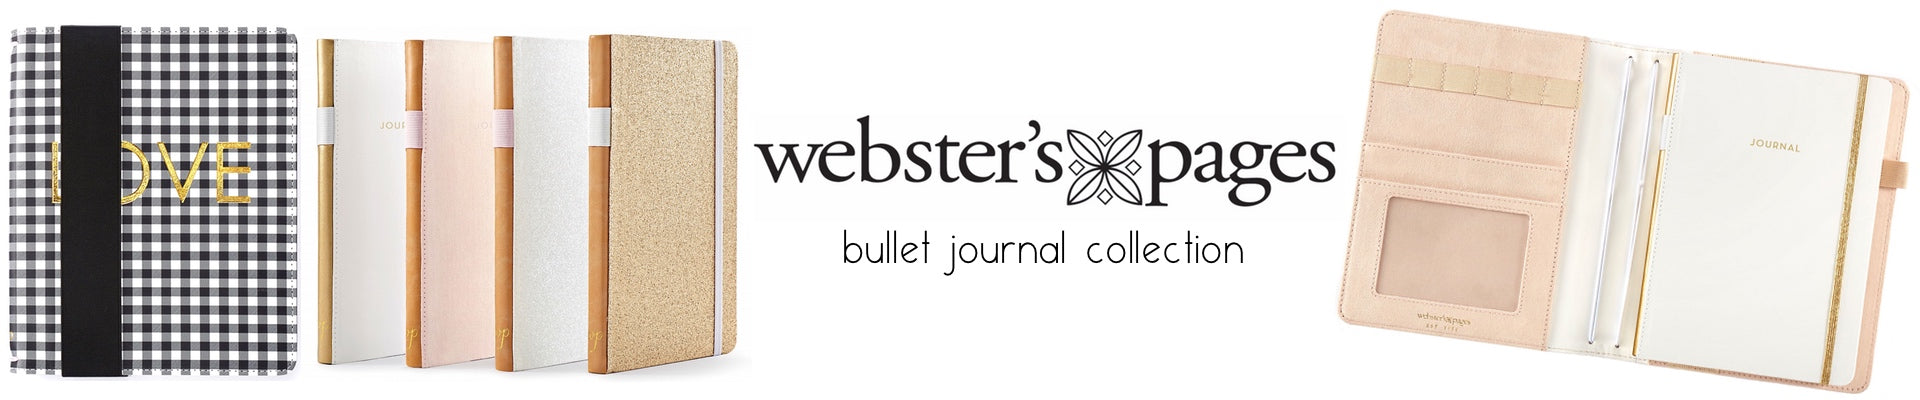 WEBSTER'S PAGES COLOR CRUSH BULLET JOURNAL COVERS AND NOTEBOOKS